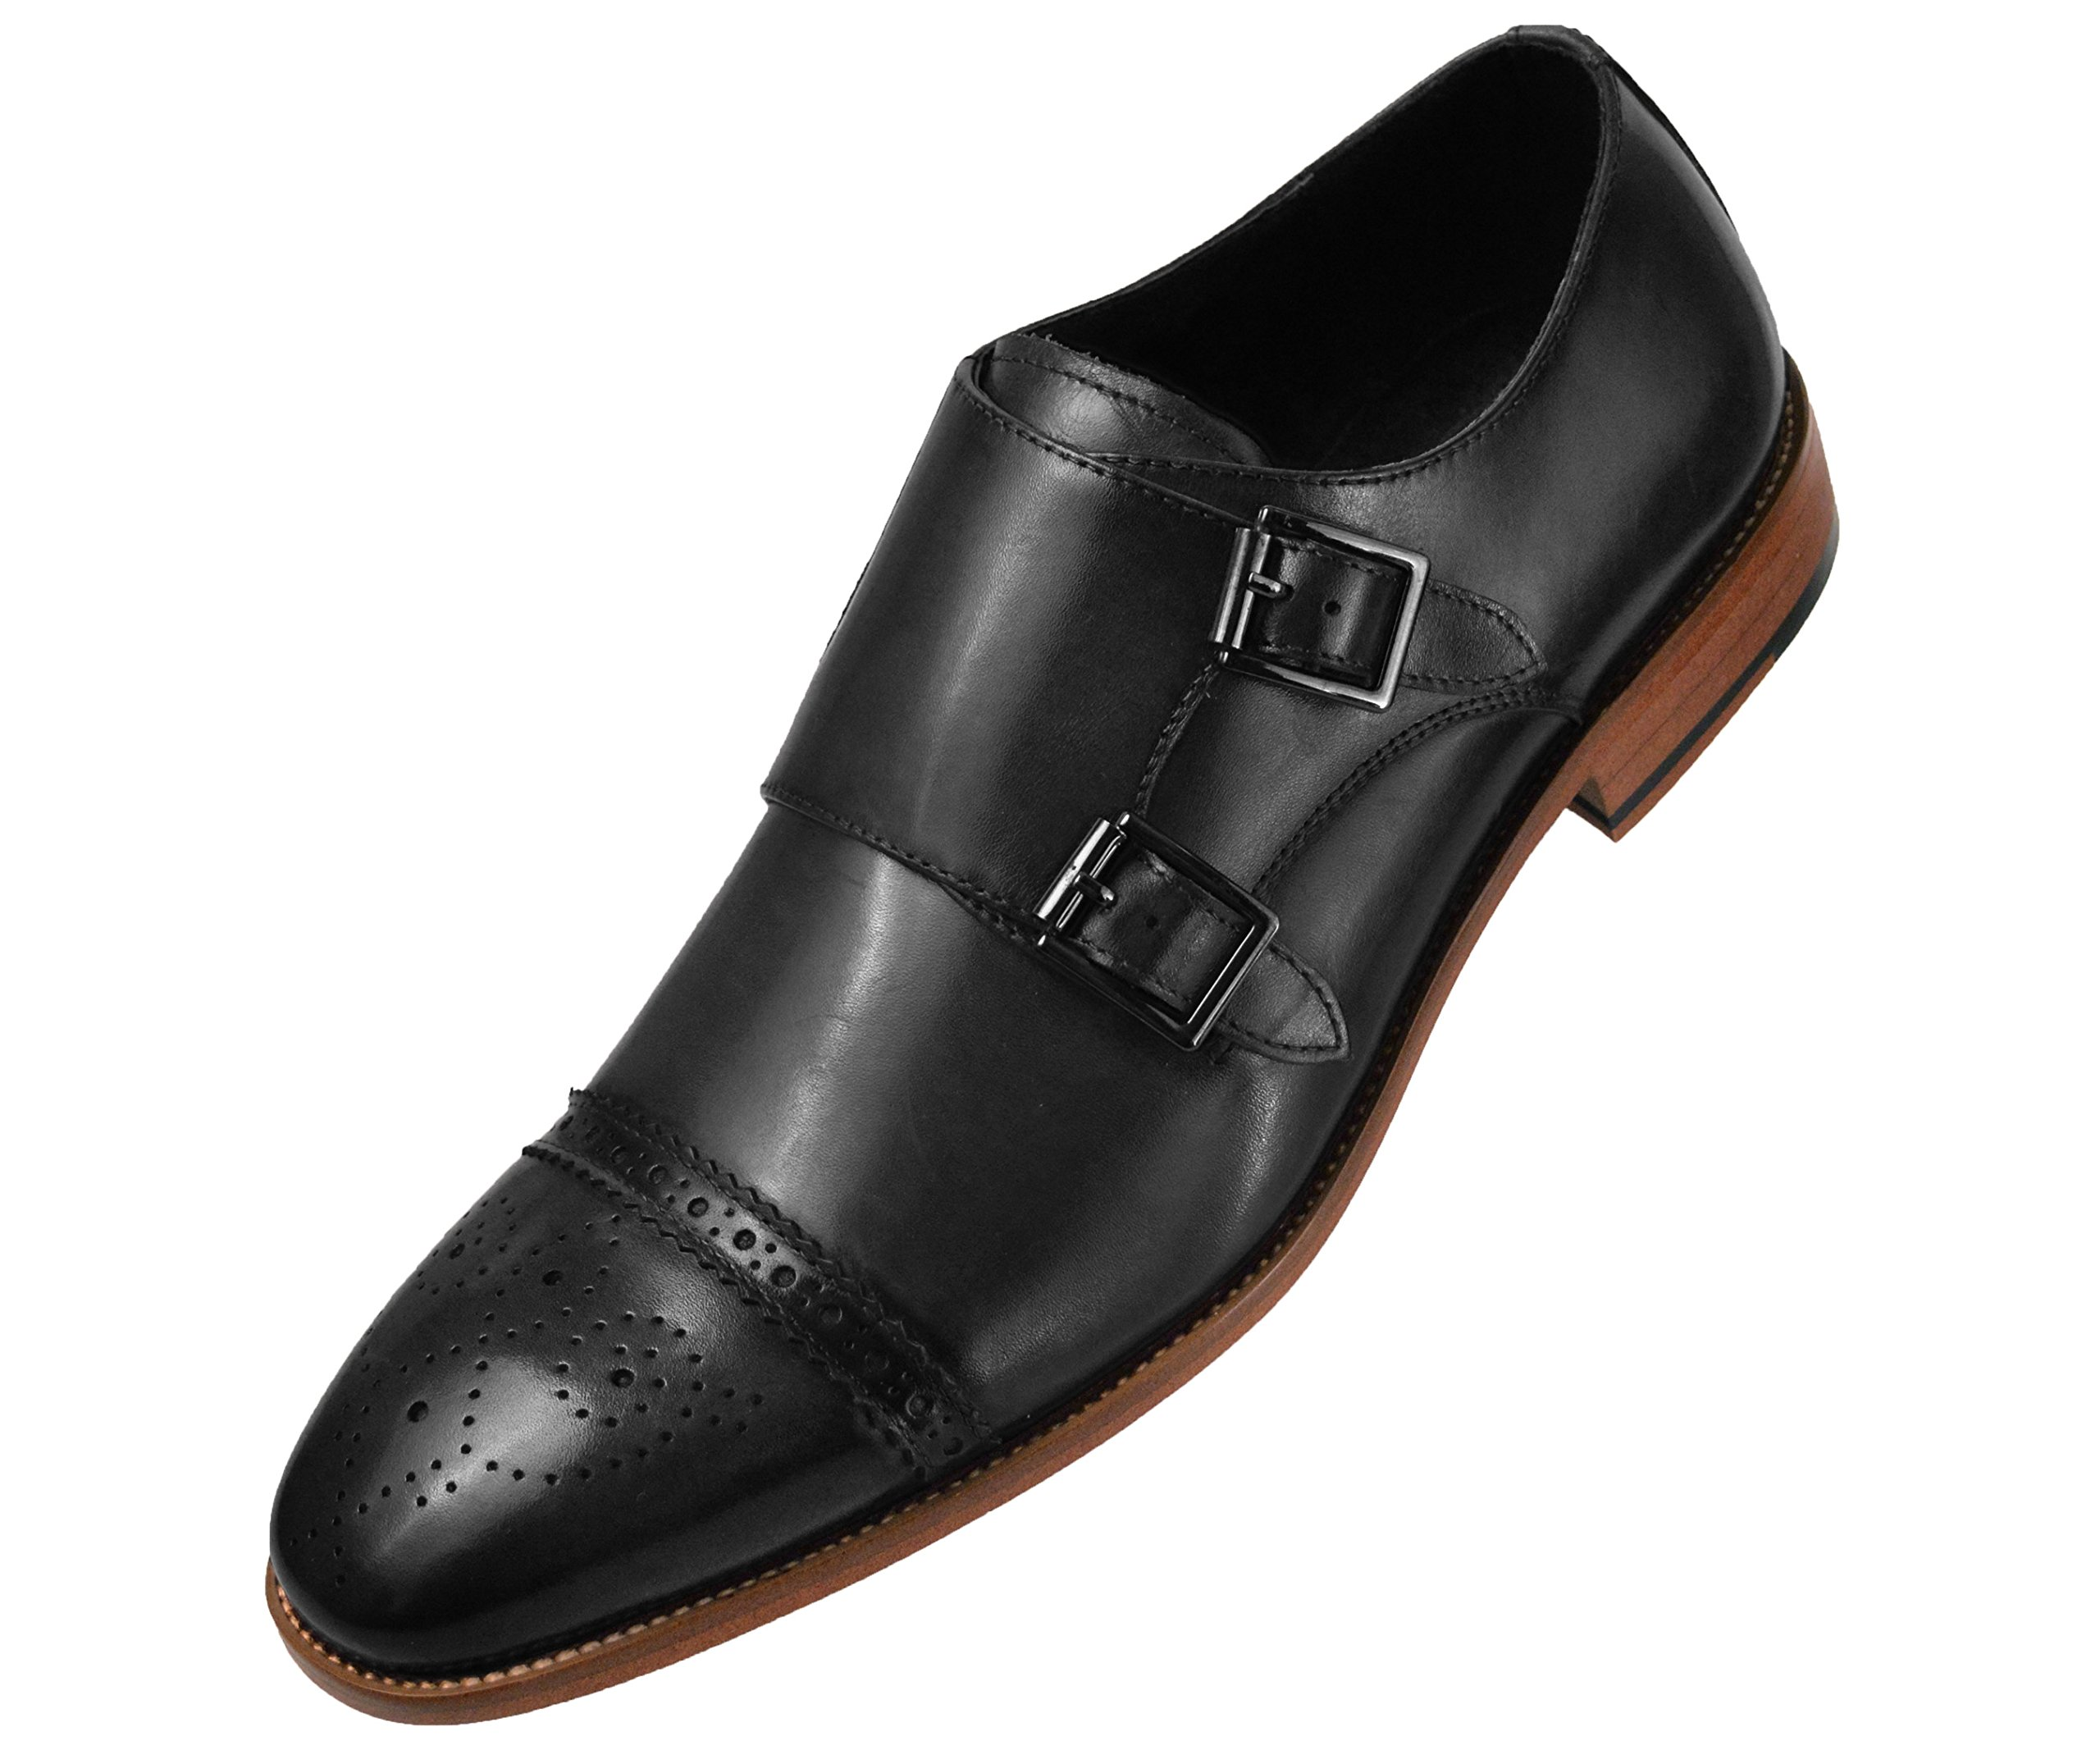 Asher Green Mens Dress Shoes, Genuine Calf Leather Cap Toe, Comfortable Double Monk Strap